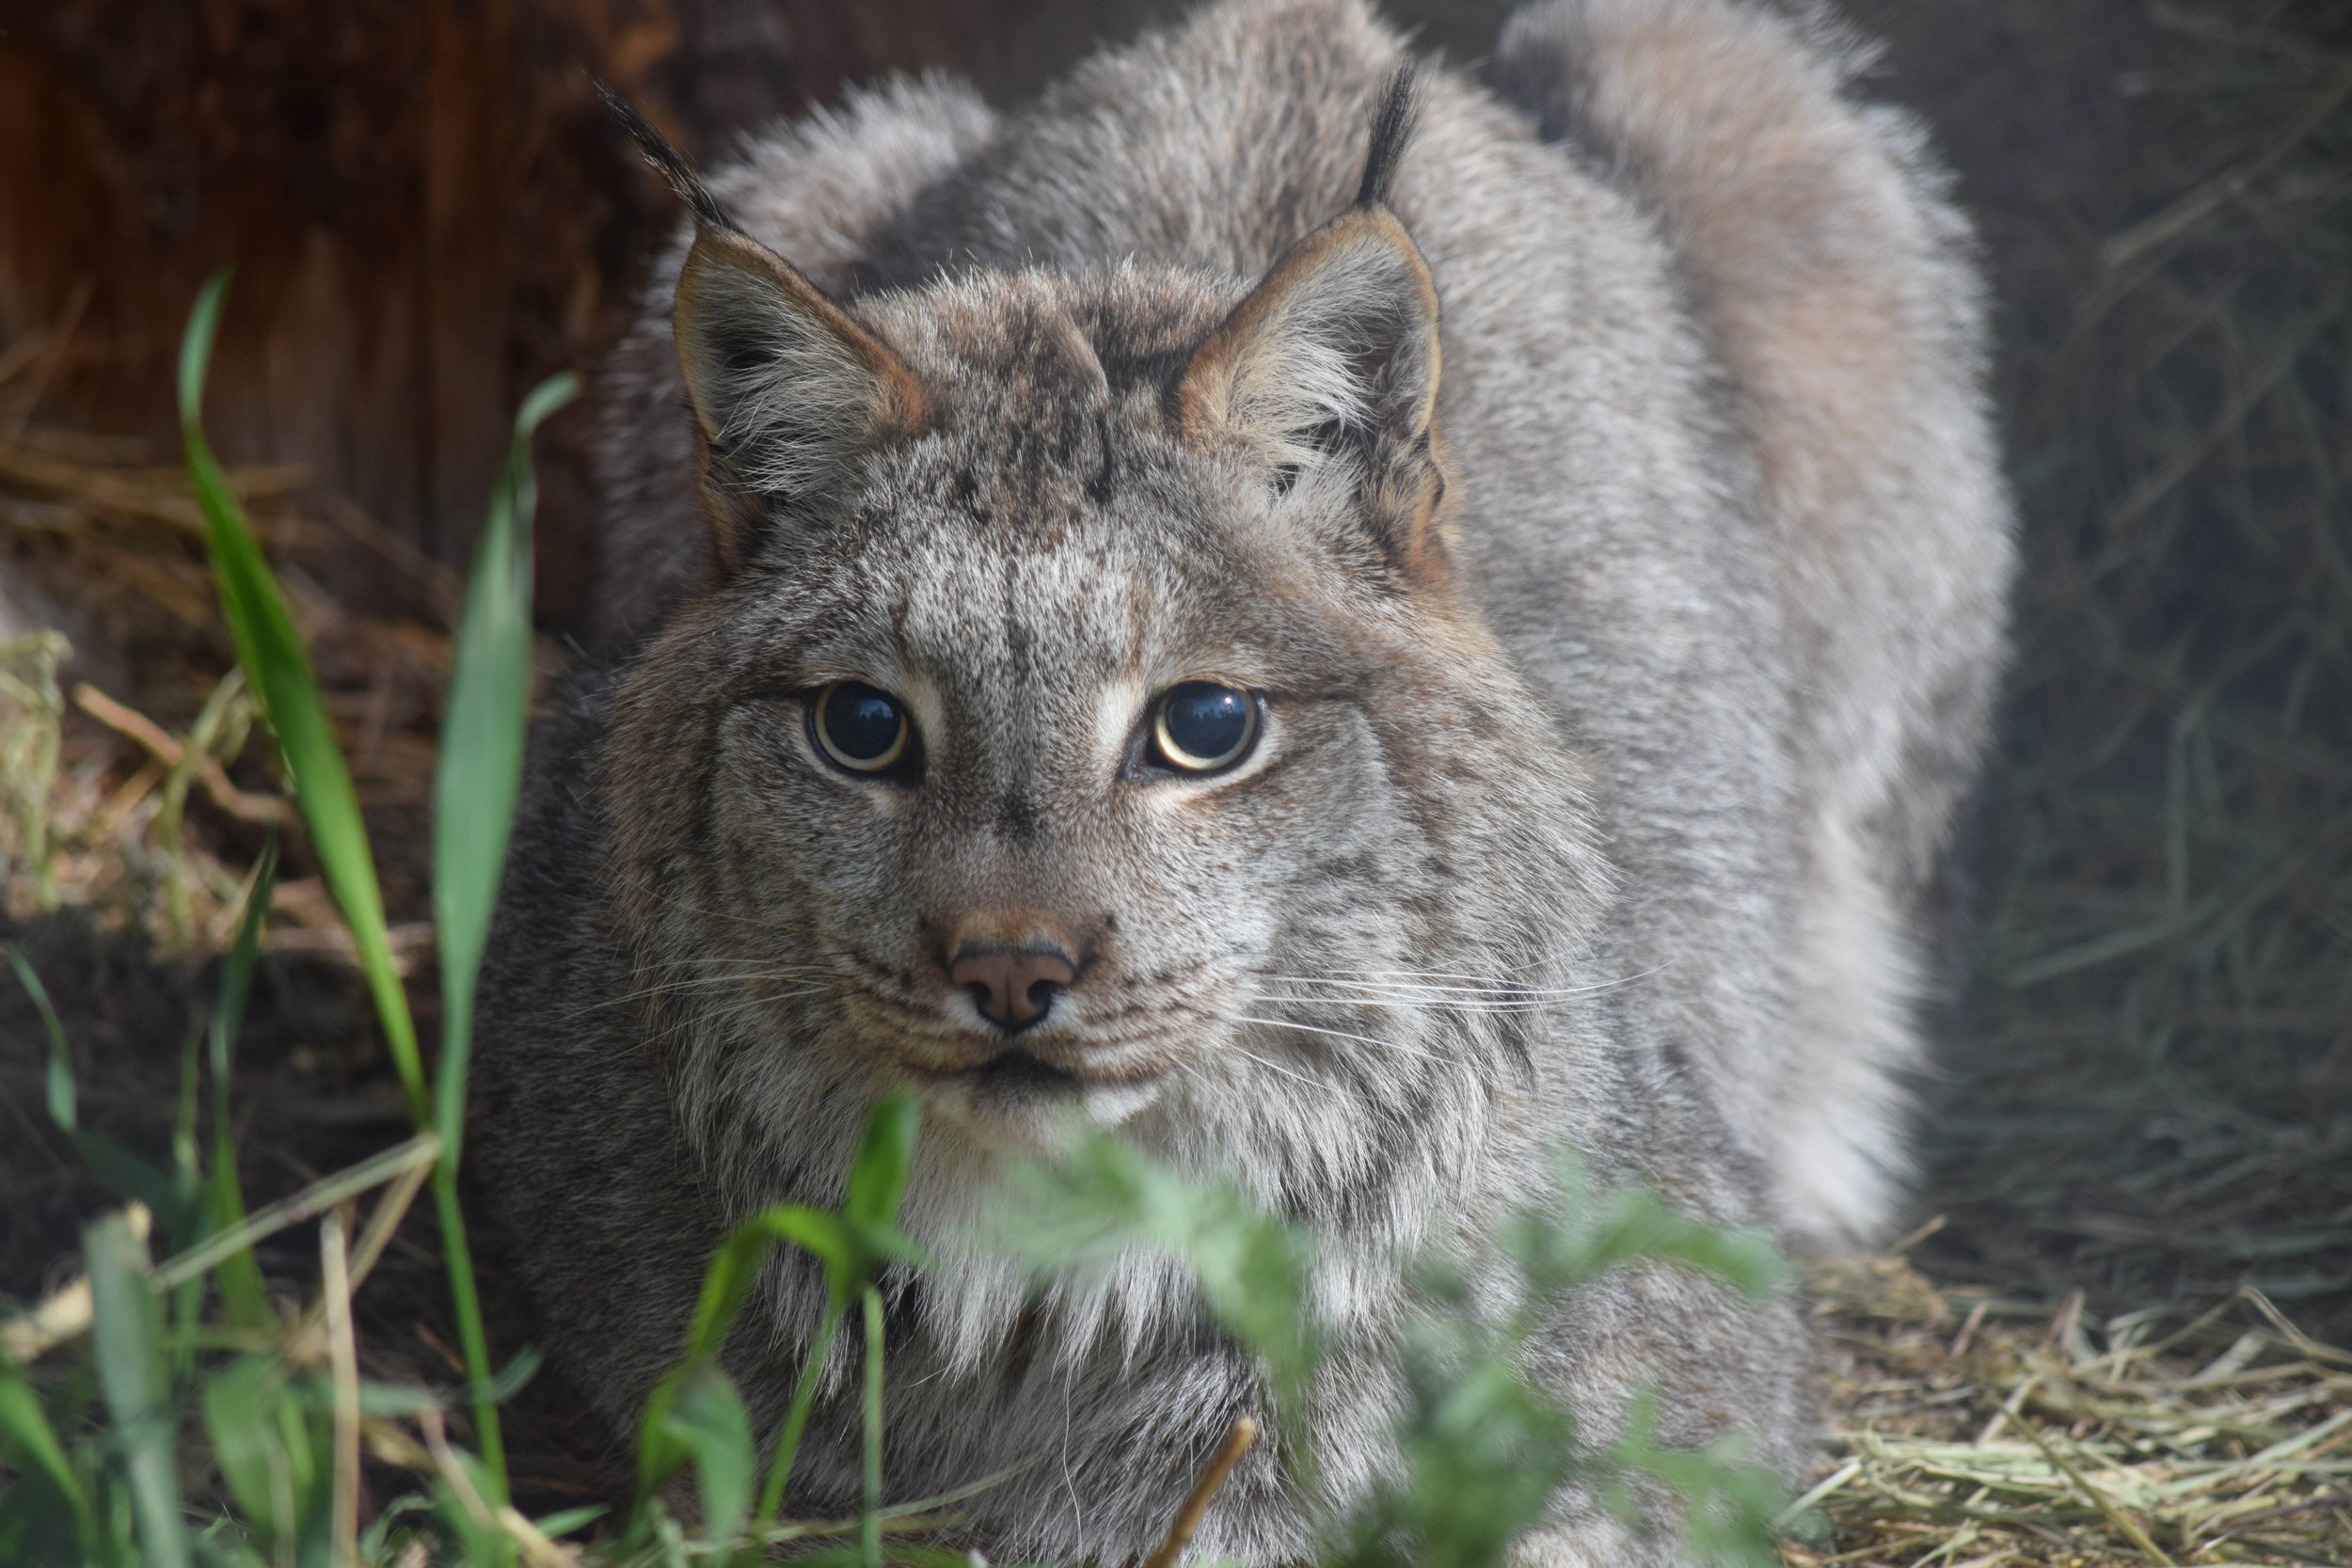 THOR  was born on a fur farm. The person who purchased him from the fur farm ended up bringing him to us for long-term care. Thor has very poor eyesight and never learned to hunt, so he can't be released into the wild. He was born in 2006.